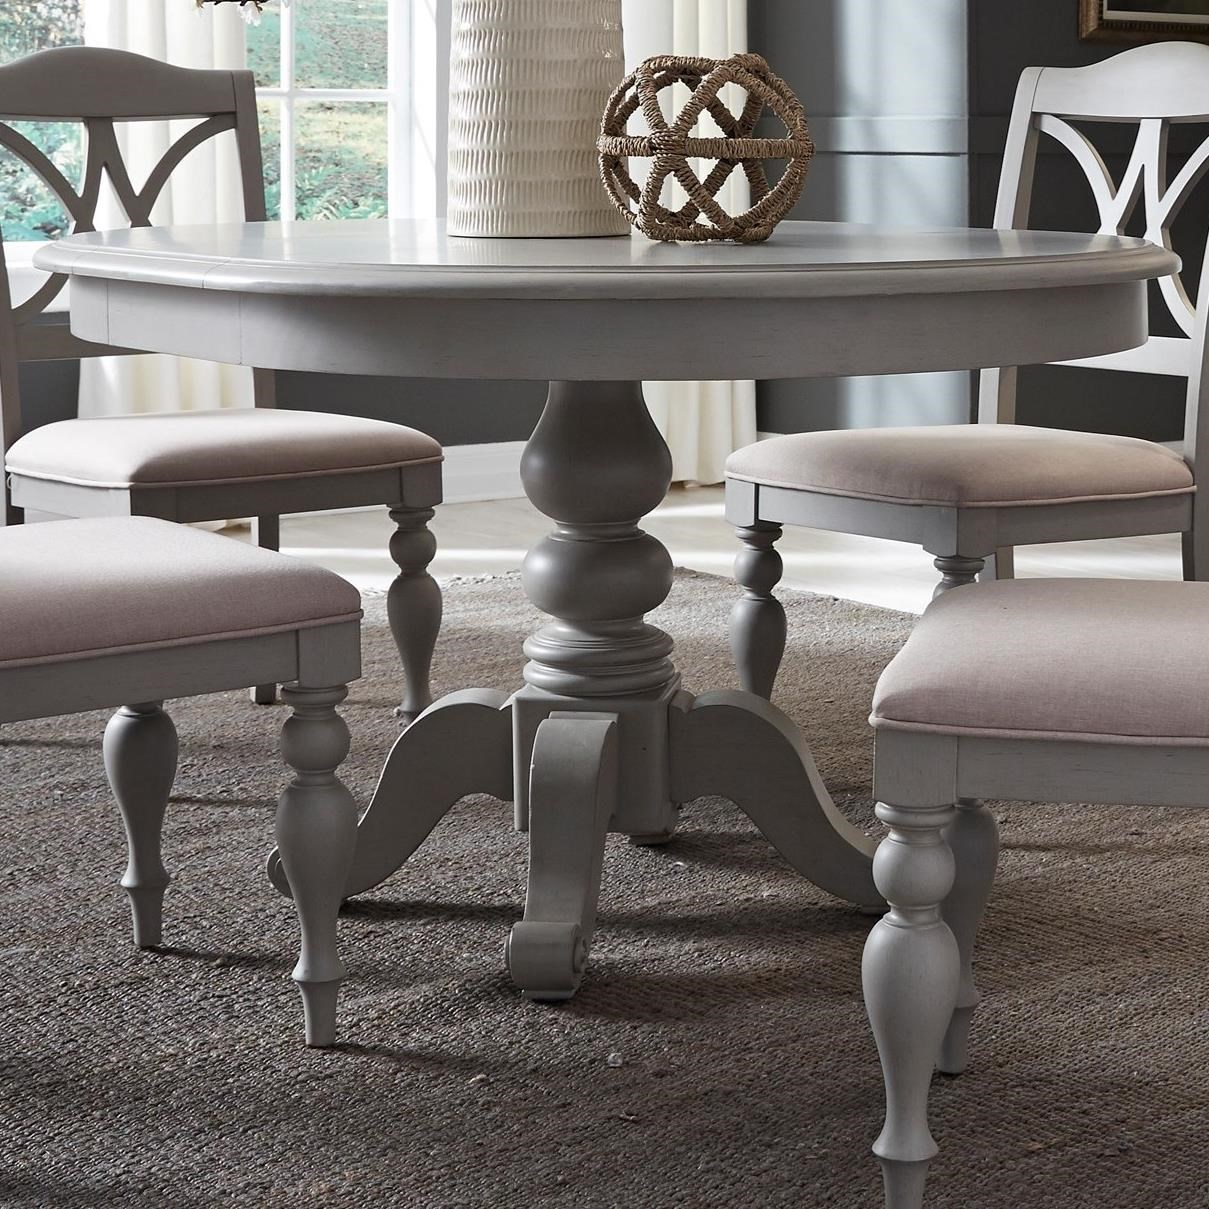 Summer House Dining Round Pedestal Table by Libby at Walker's Furniture